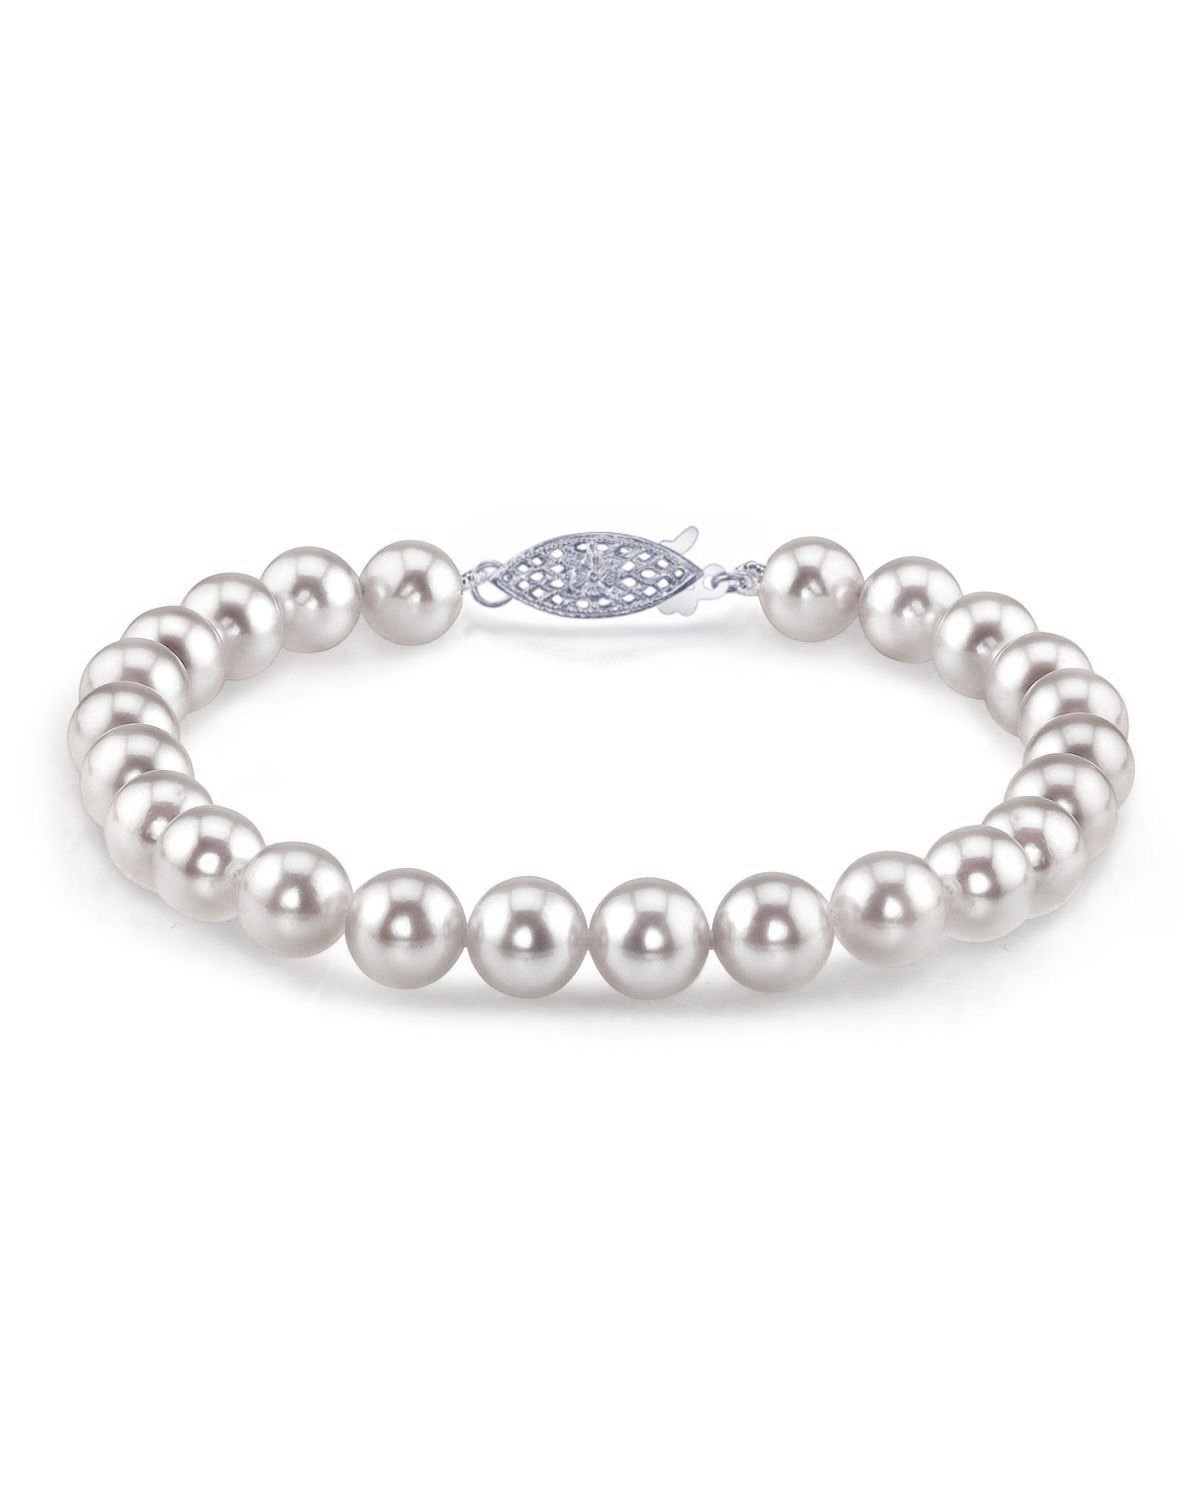 14K Gold 7.0-7.5mm Japanese Akoya Saltwater White Cultured Pearl Bracelet - AAA Quality